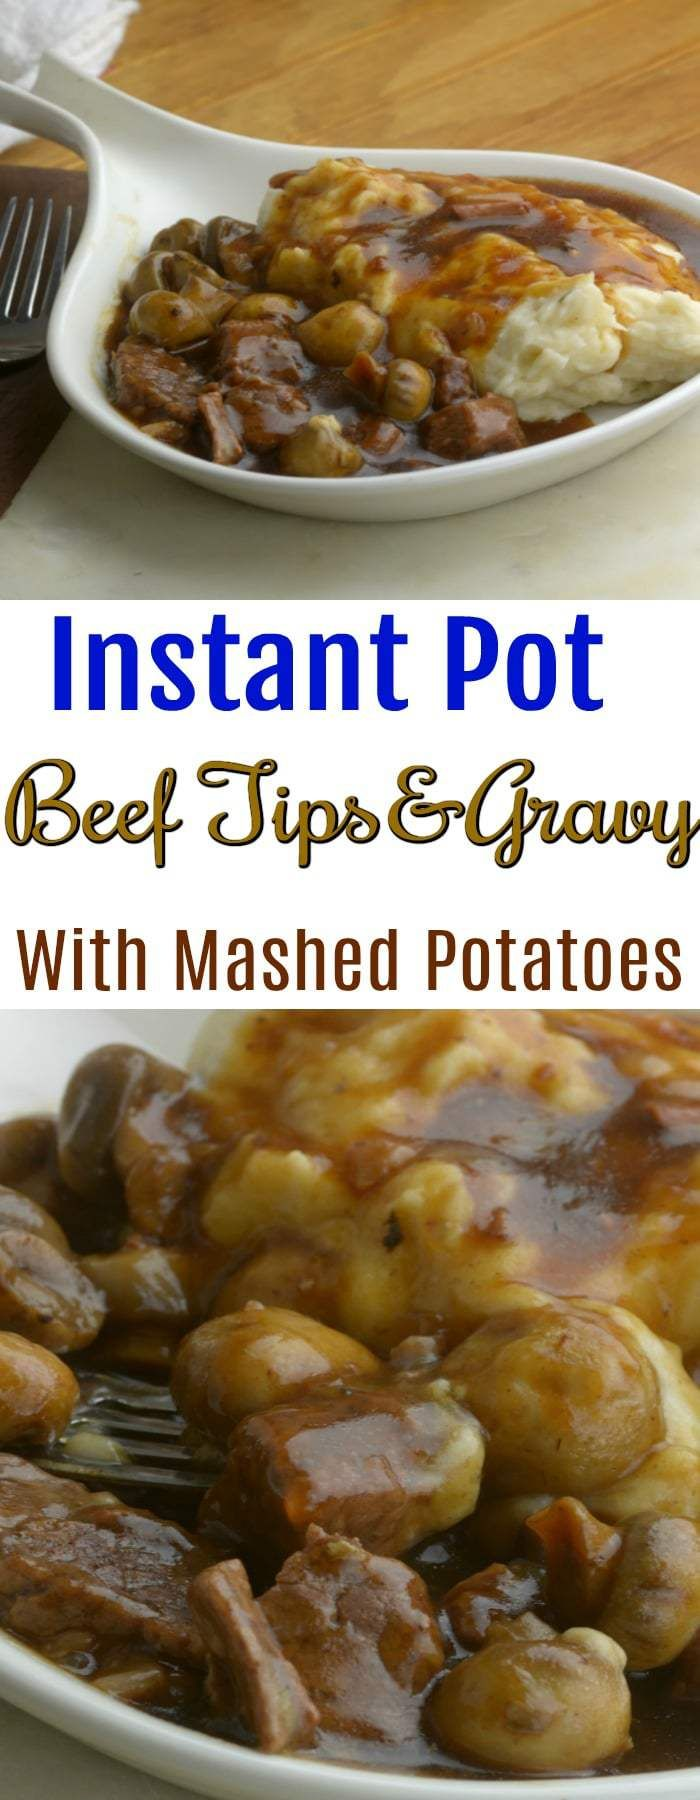 Instant Pot Beef Tips and Gravy with Mashed Potatoes